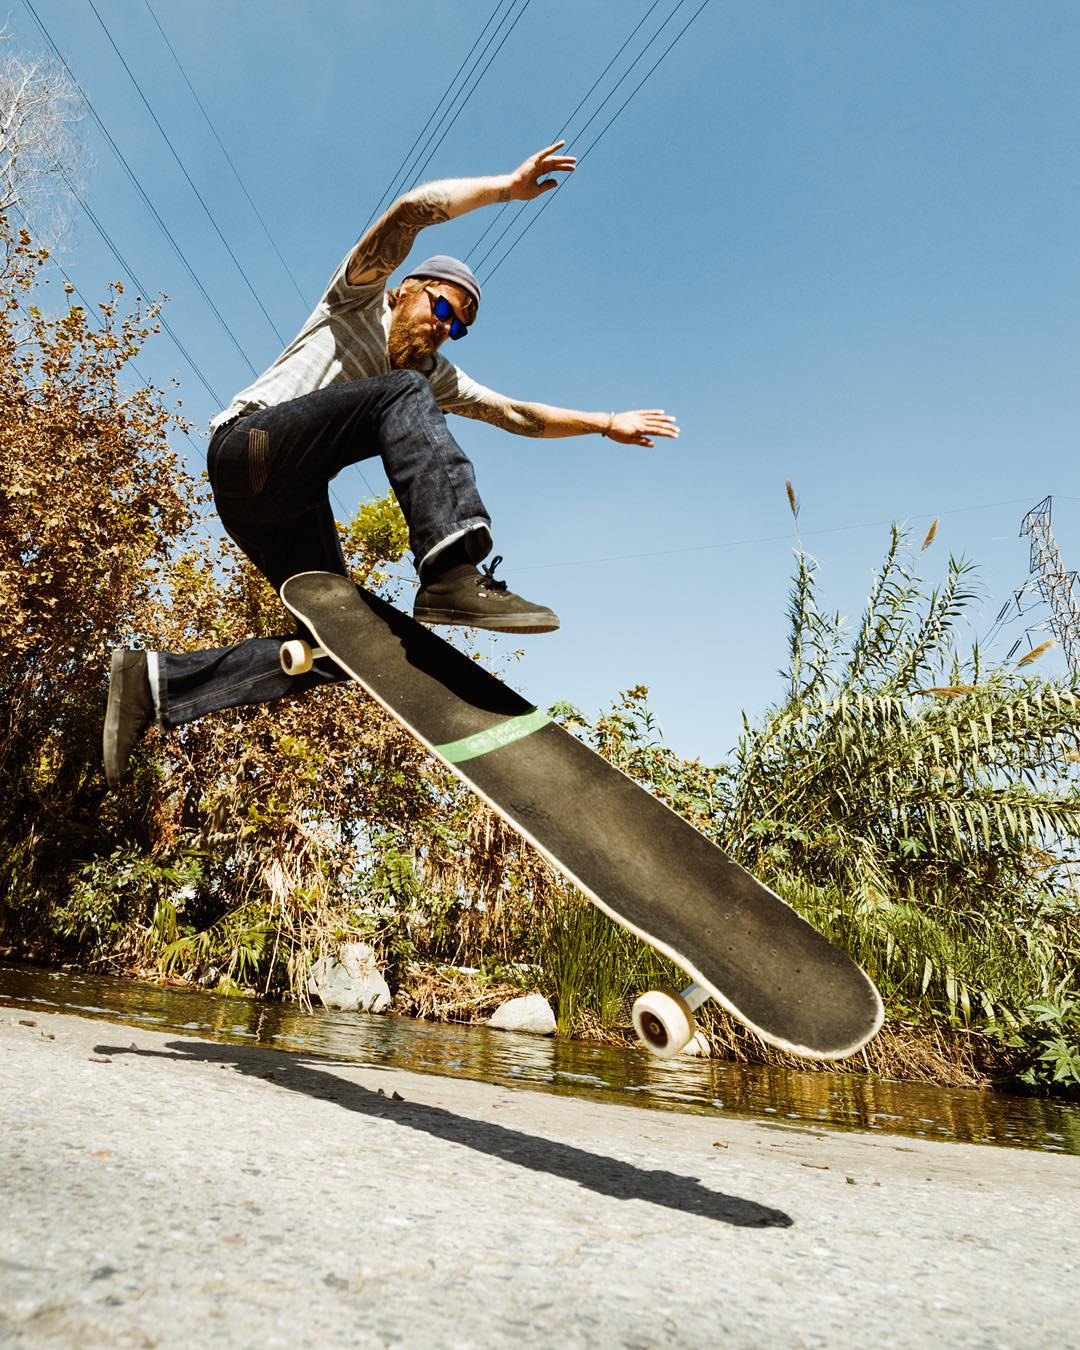 @petermarkgraf with a no comply shov in the LA river. #caliber50 photo @theduster22